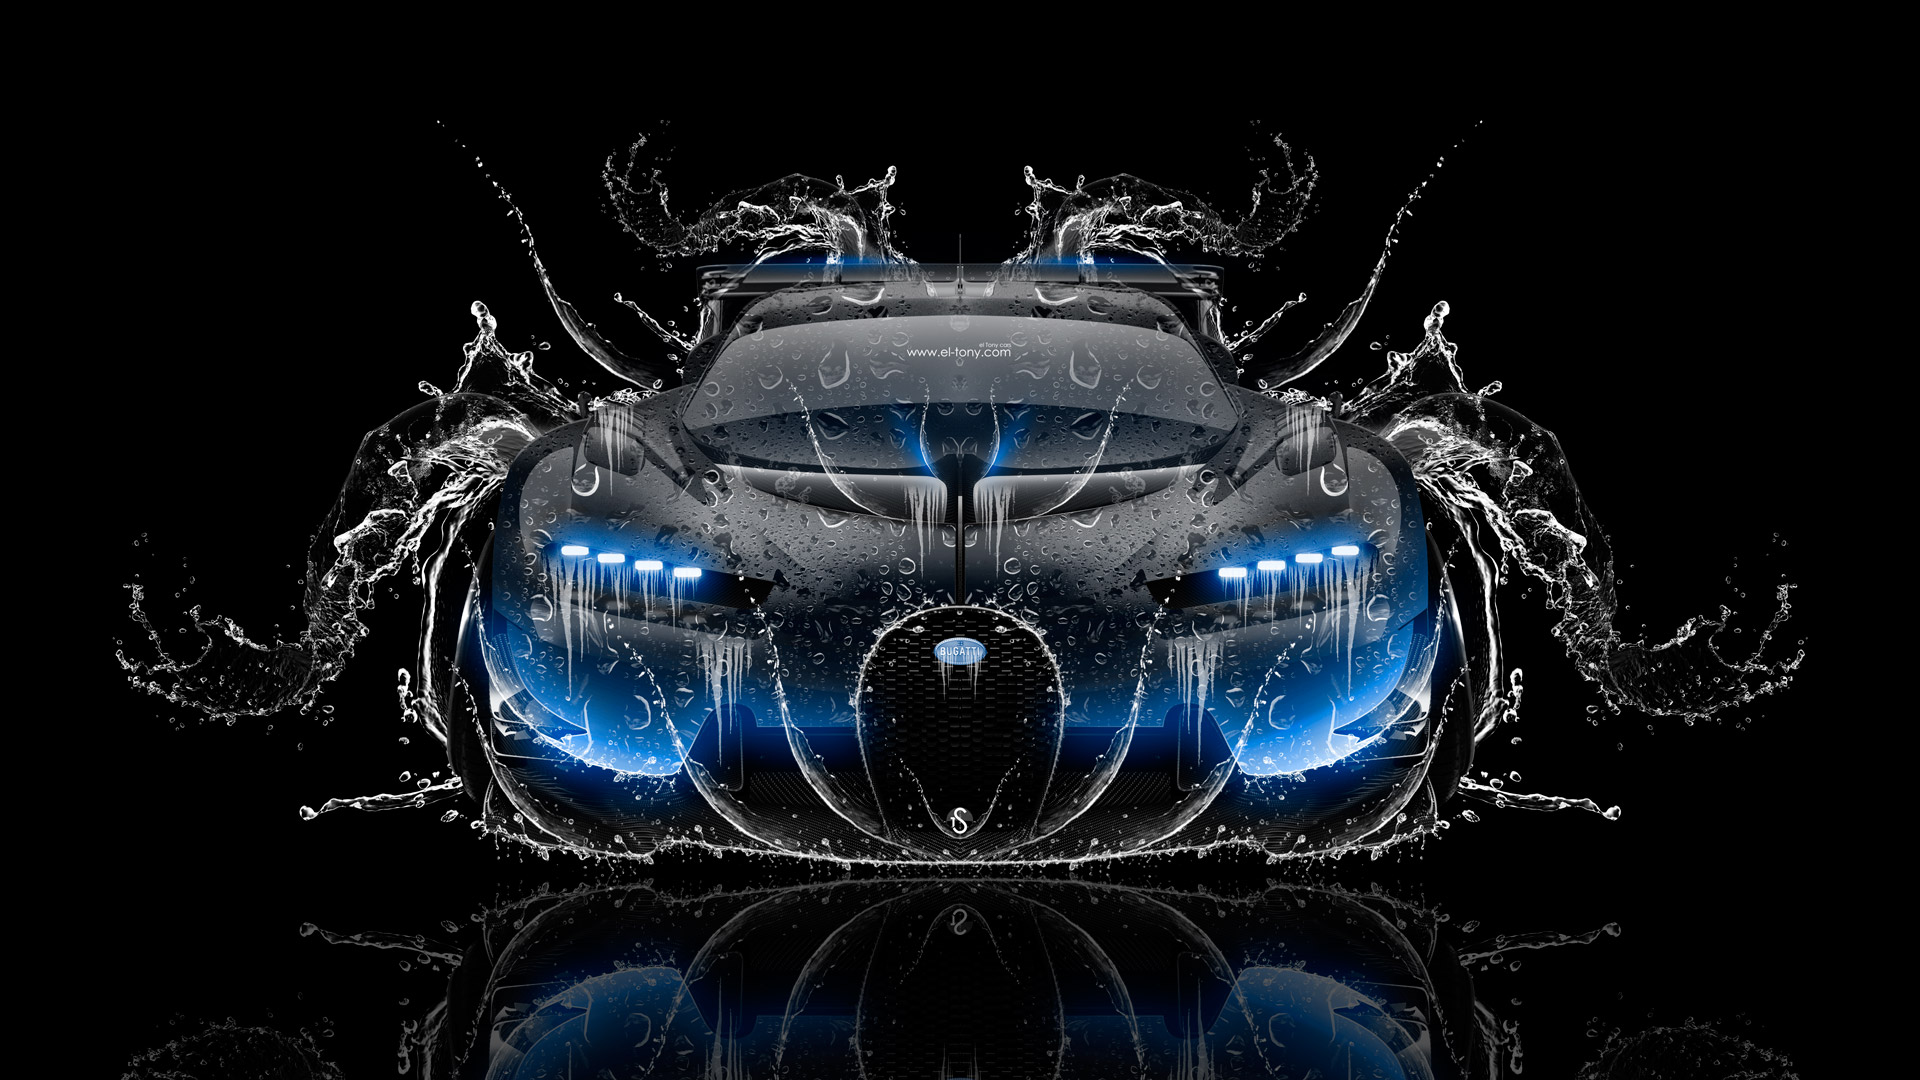 Incroyable ... Bugatti Vision Gran Turismo FrontUp Super Water Car 2016